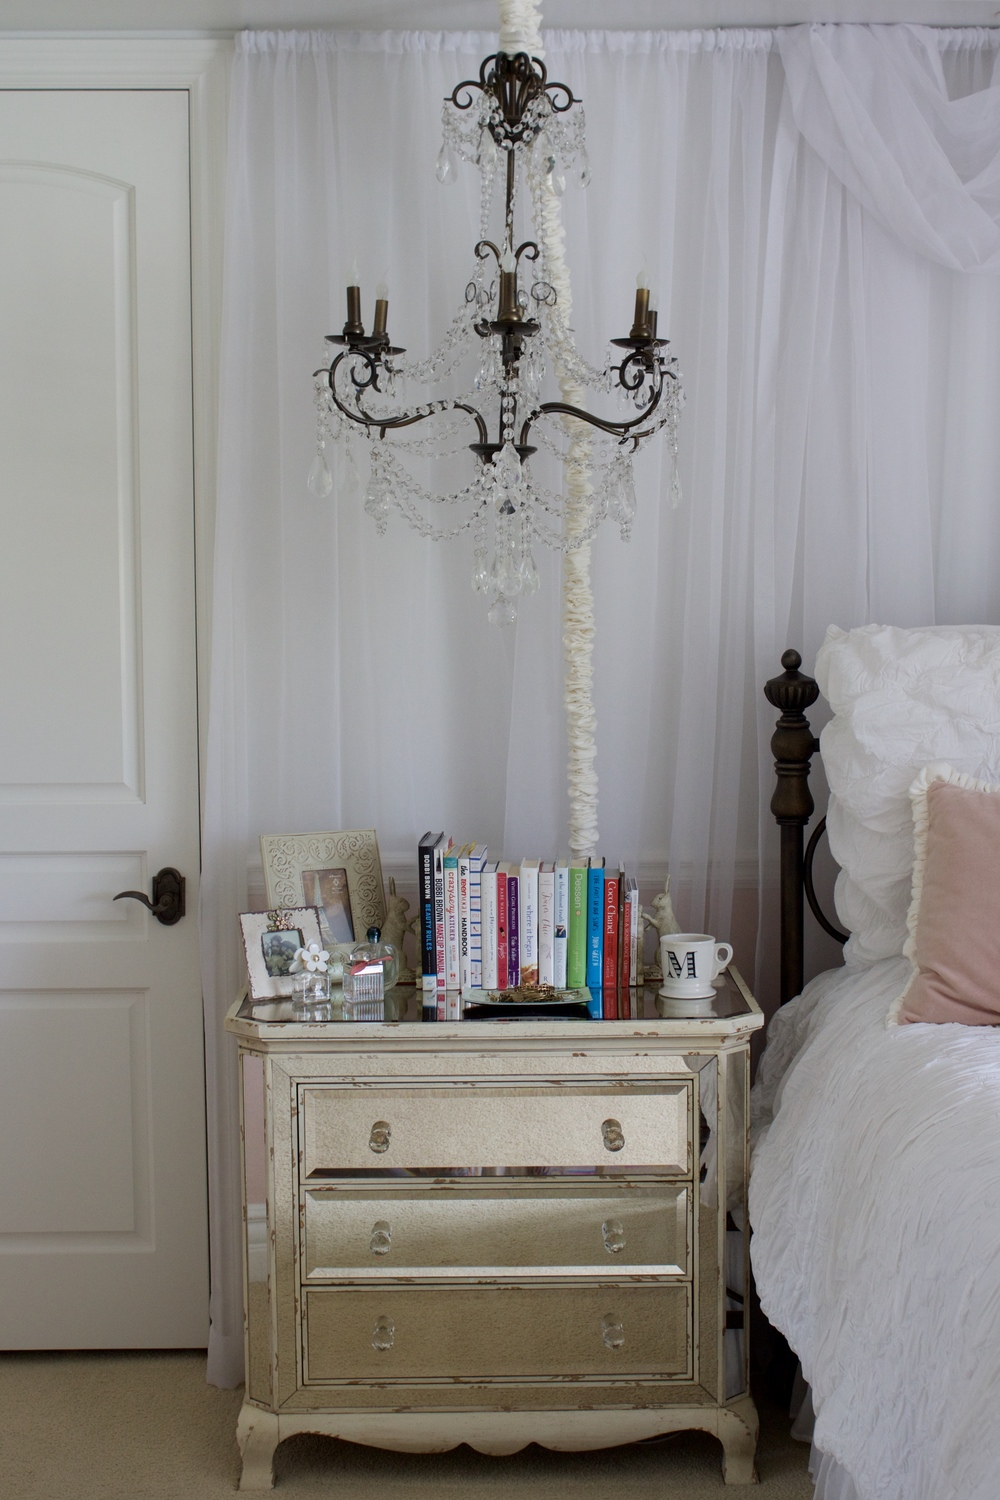 Samantha McNeil Night Stand with a Chandelier